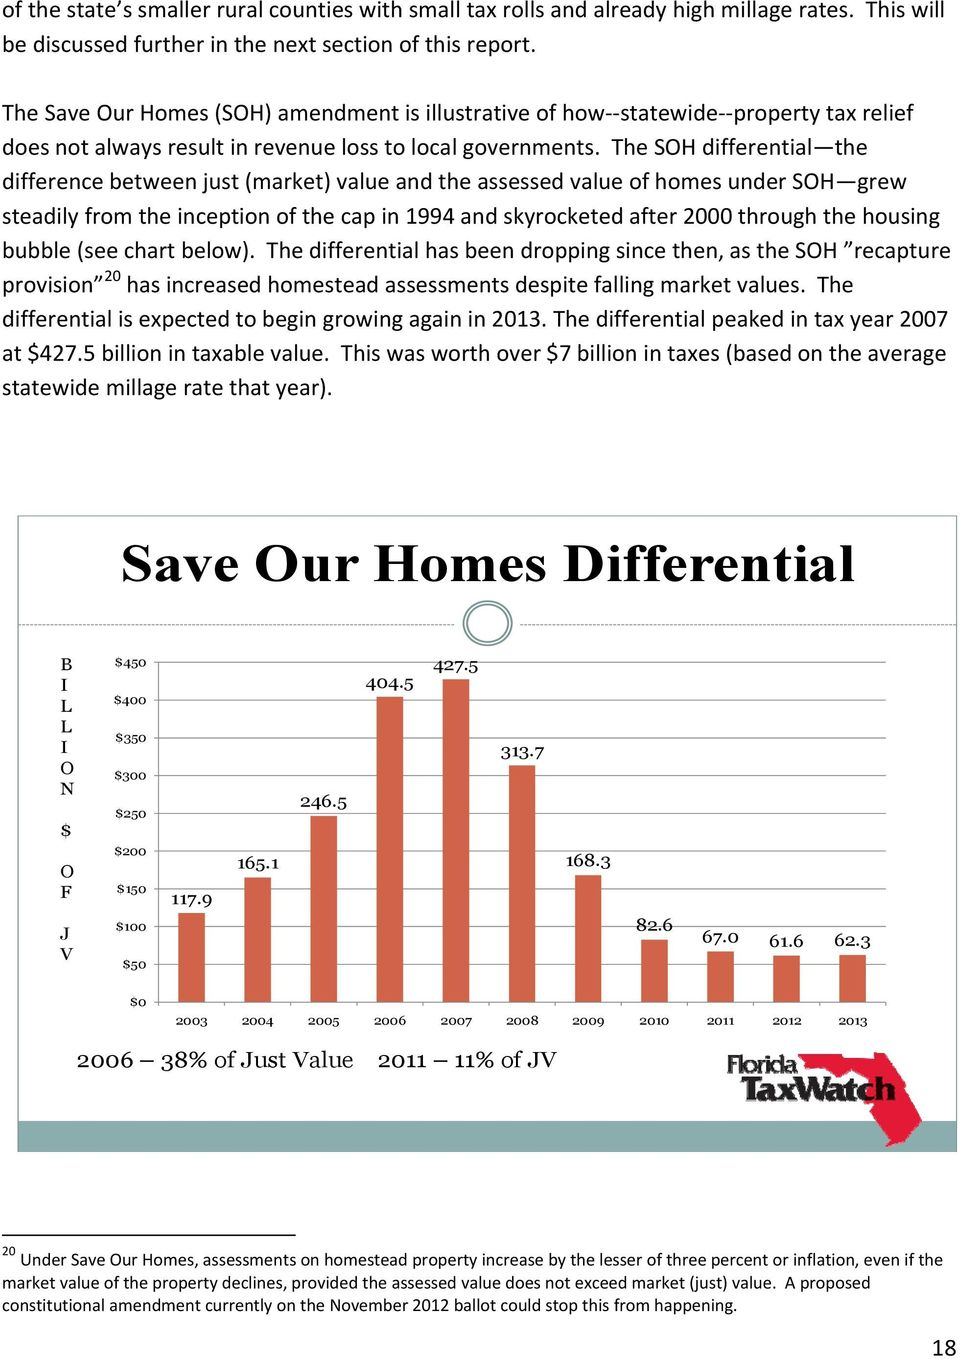 thesohdifferential the differencebetweenjust(market)valueandtheassessedvalueofhomesundersoh grew steadilyfromtheinceptionofthecapin1994andskyrocketedafter2000throughthehousing bubble(seechartbelow).